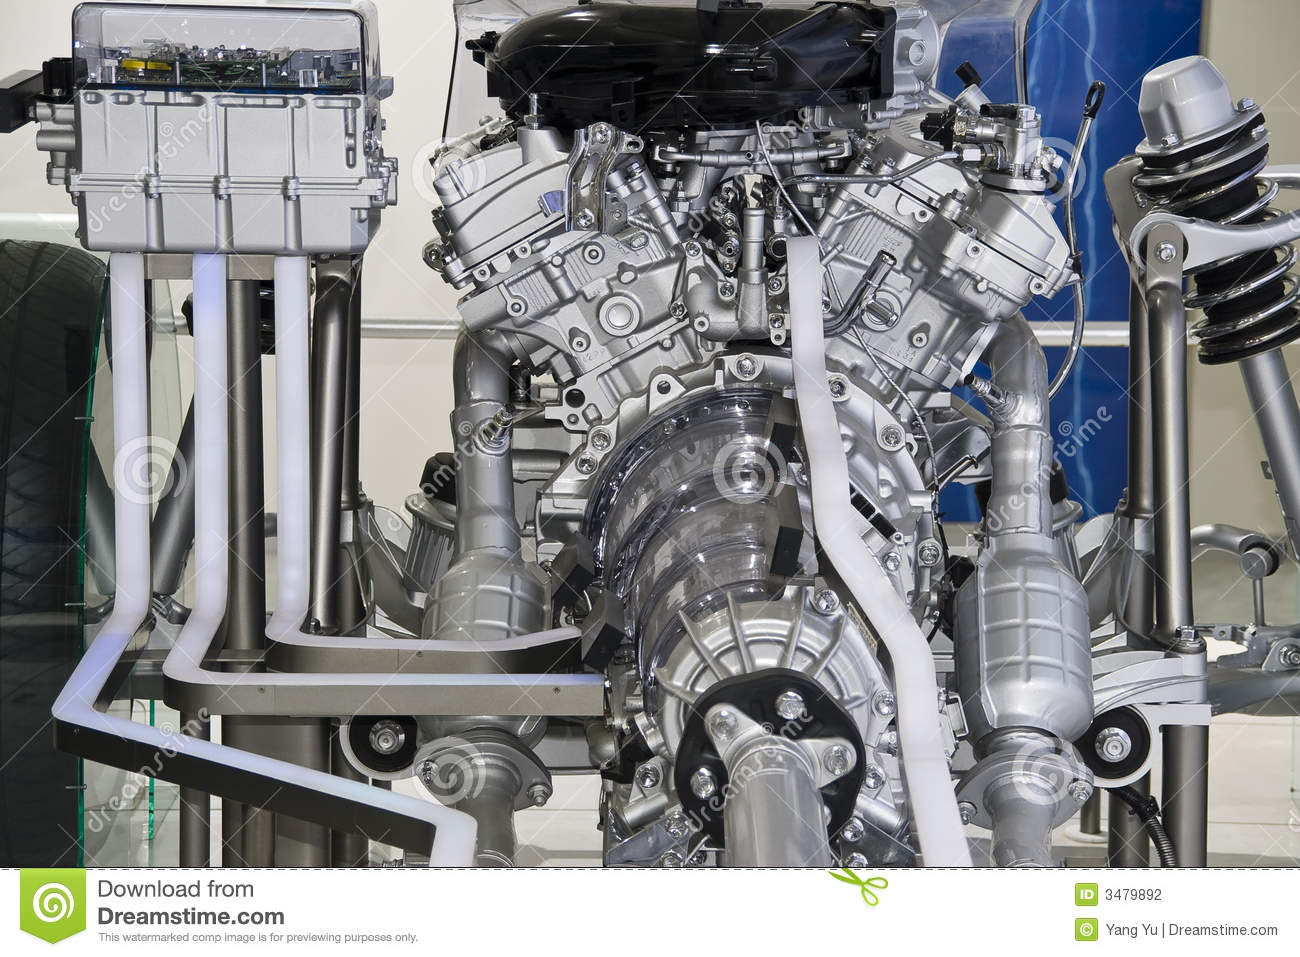 Parts of car engine stock photo. Image of automobile, technological ...